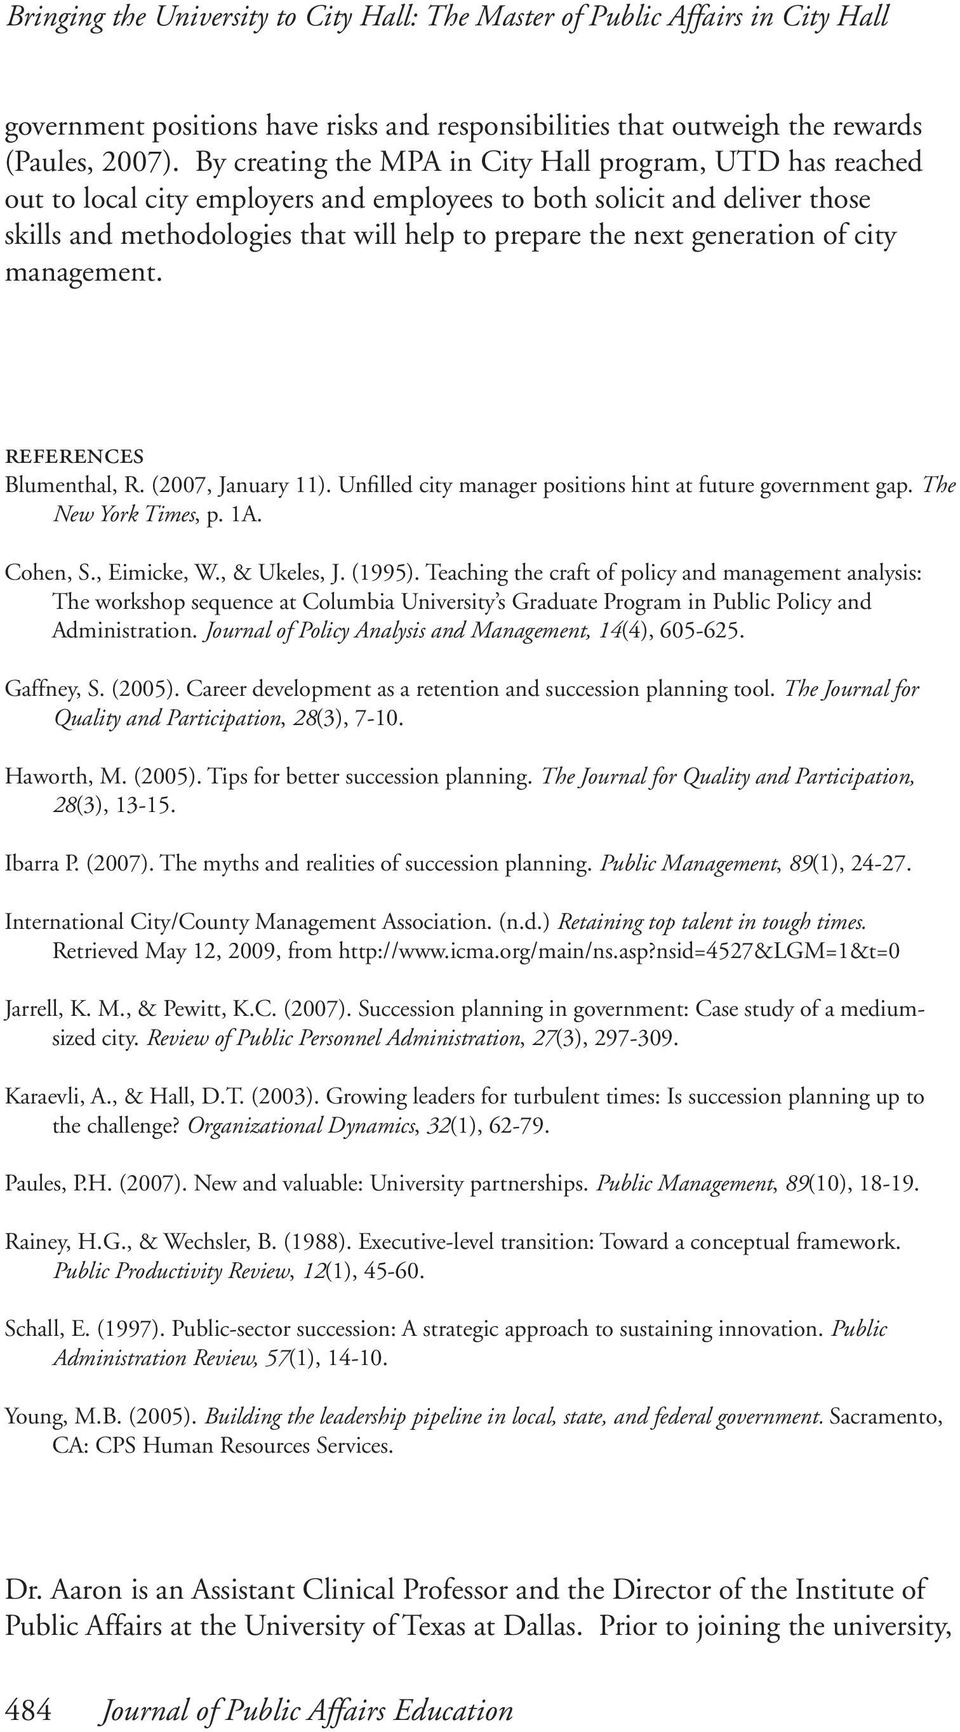 generation of city management. references Blumenthal, R. (2007, January 11). Unfilled city manager positions hint at future government gap. The New York Times, p. 1A. Cohen, S., Eimicke, W.